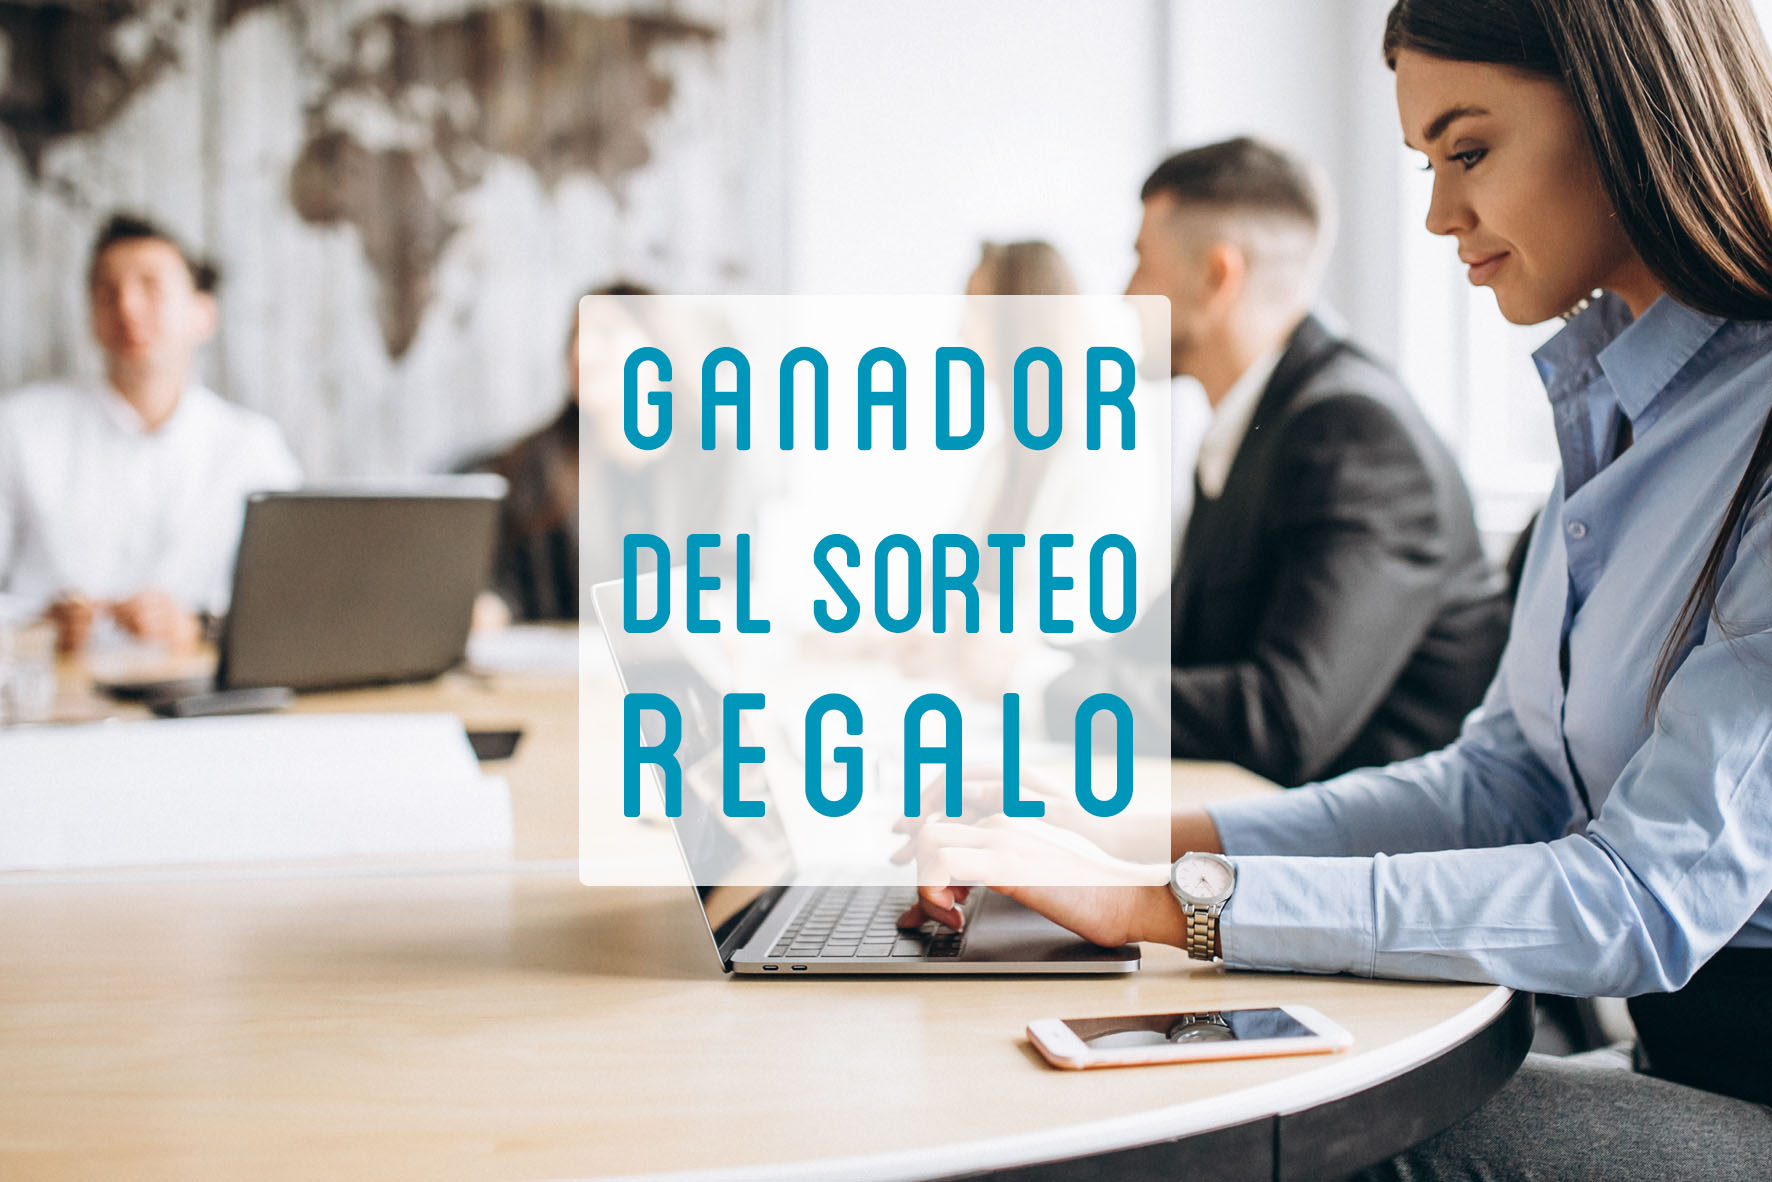 GANADOR DEL SORTEO-REGALO UMA formación, Curso Fundamentos marketing turístico GRATIS